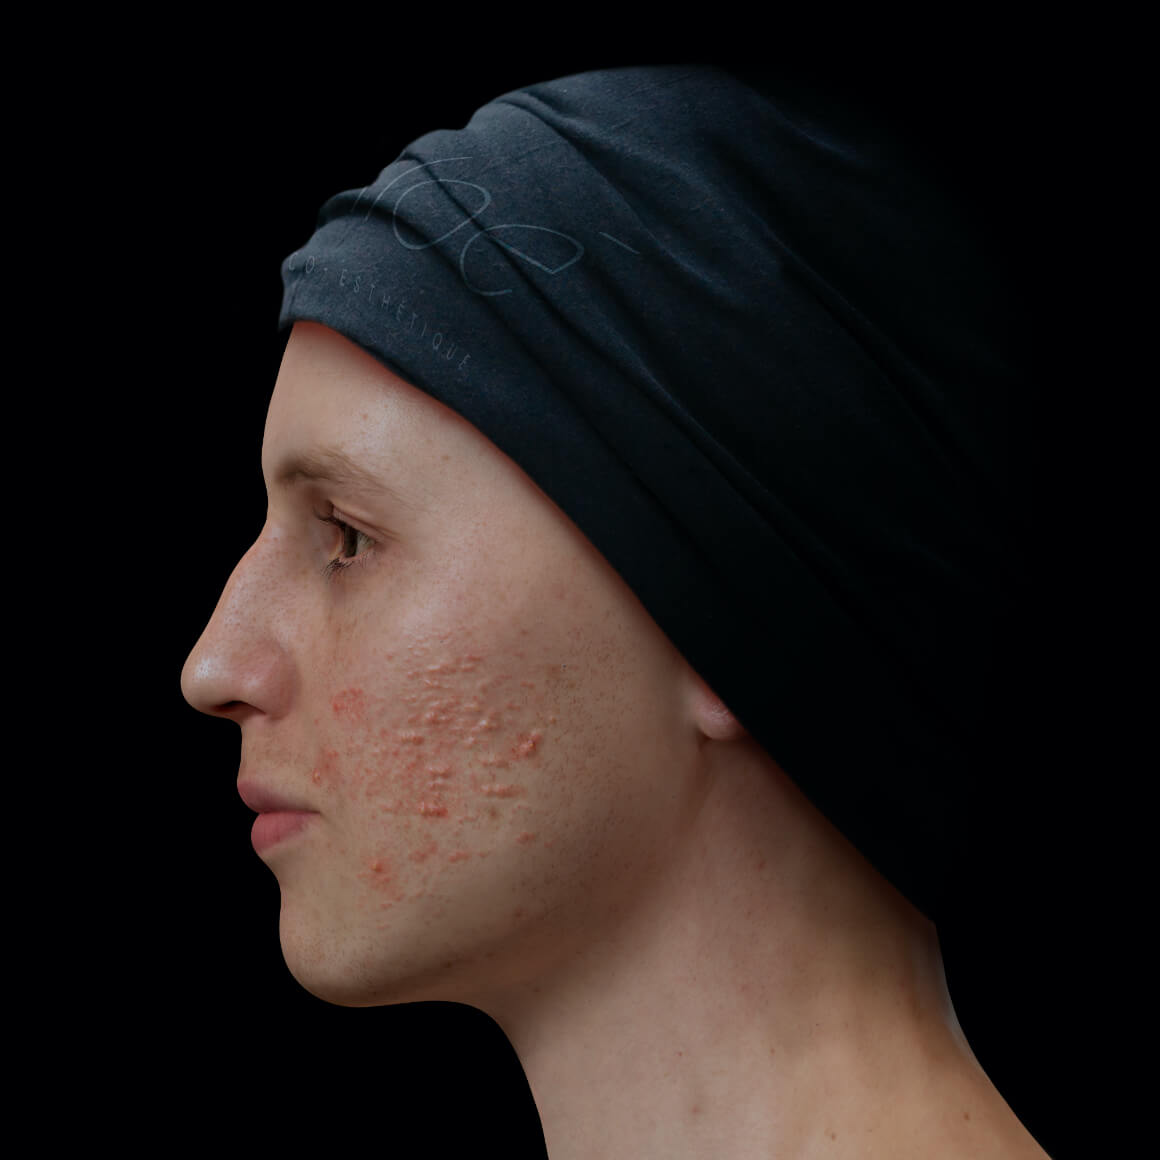 Male patient at Clinique Chloé positioned sideways with active acne on his face